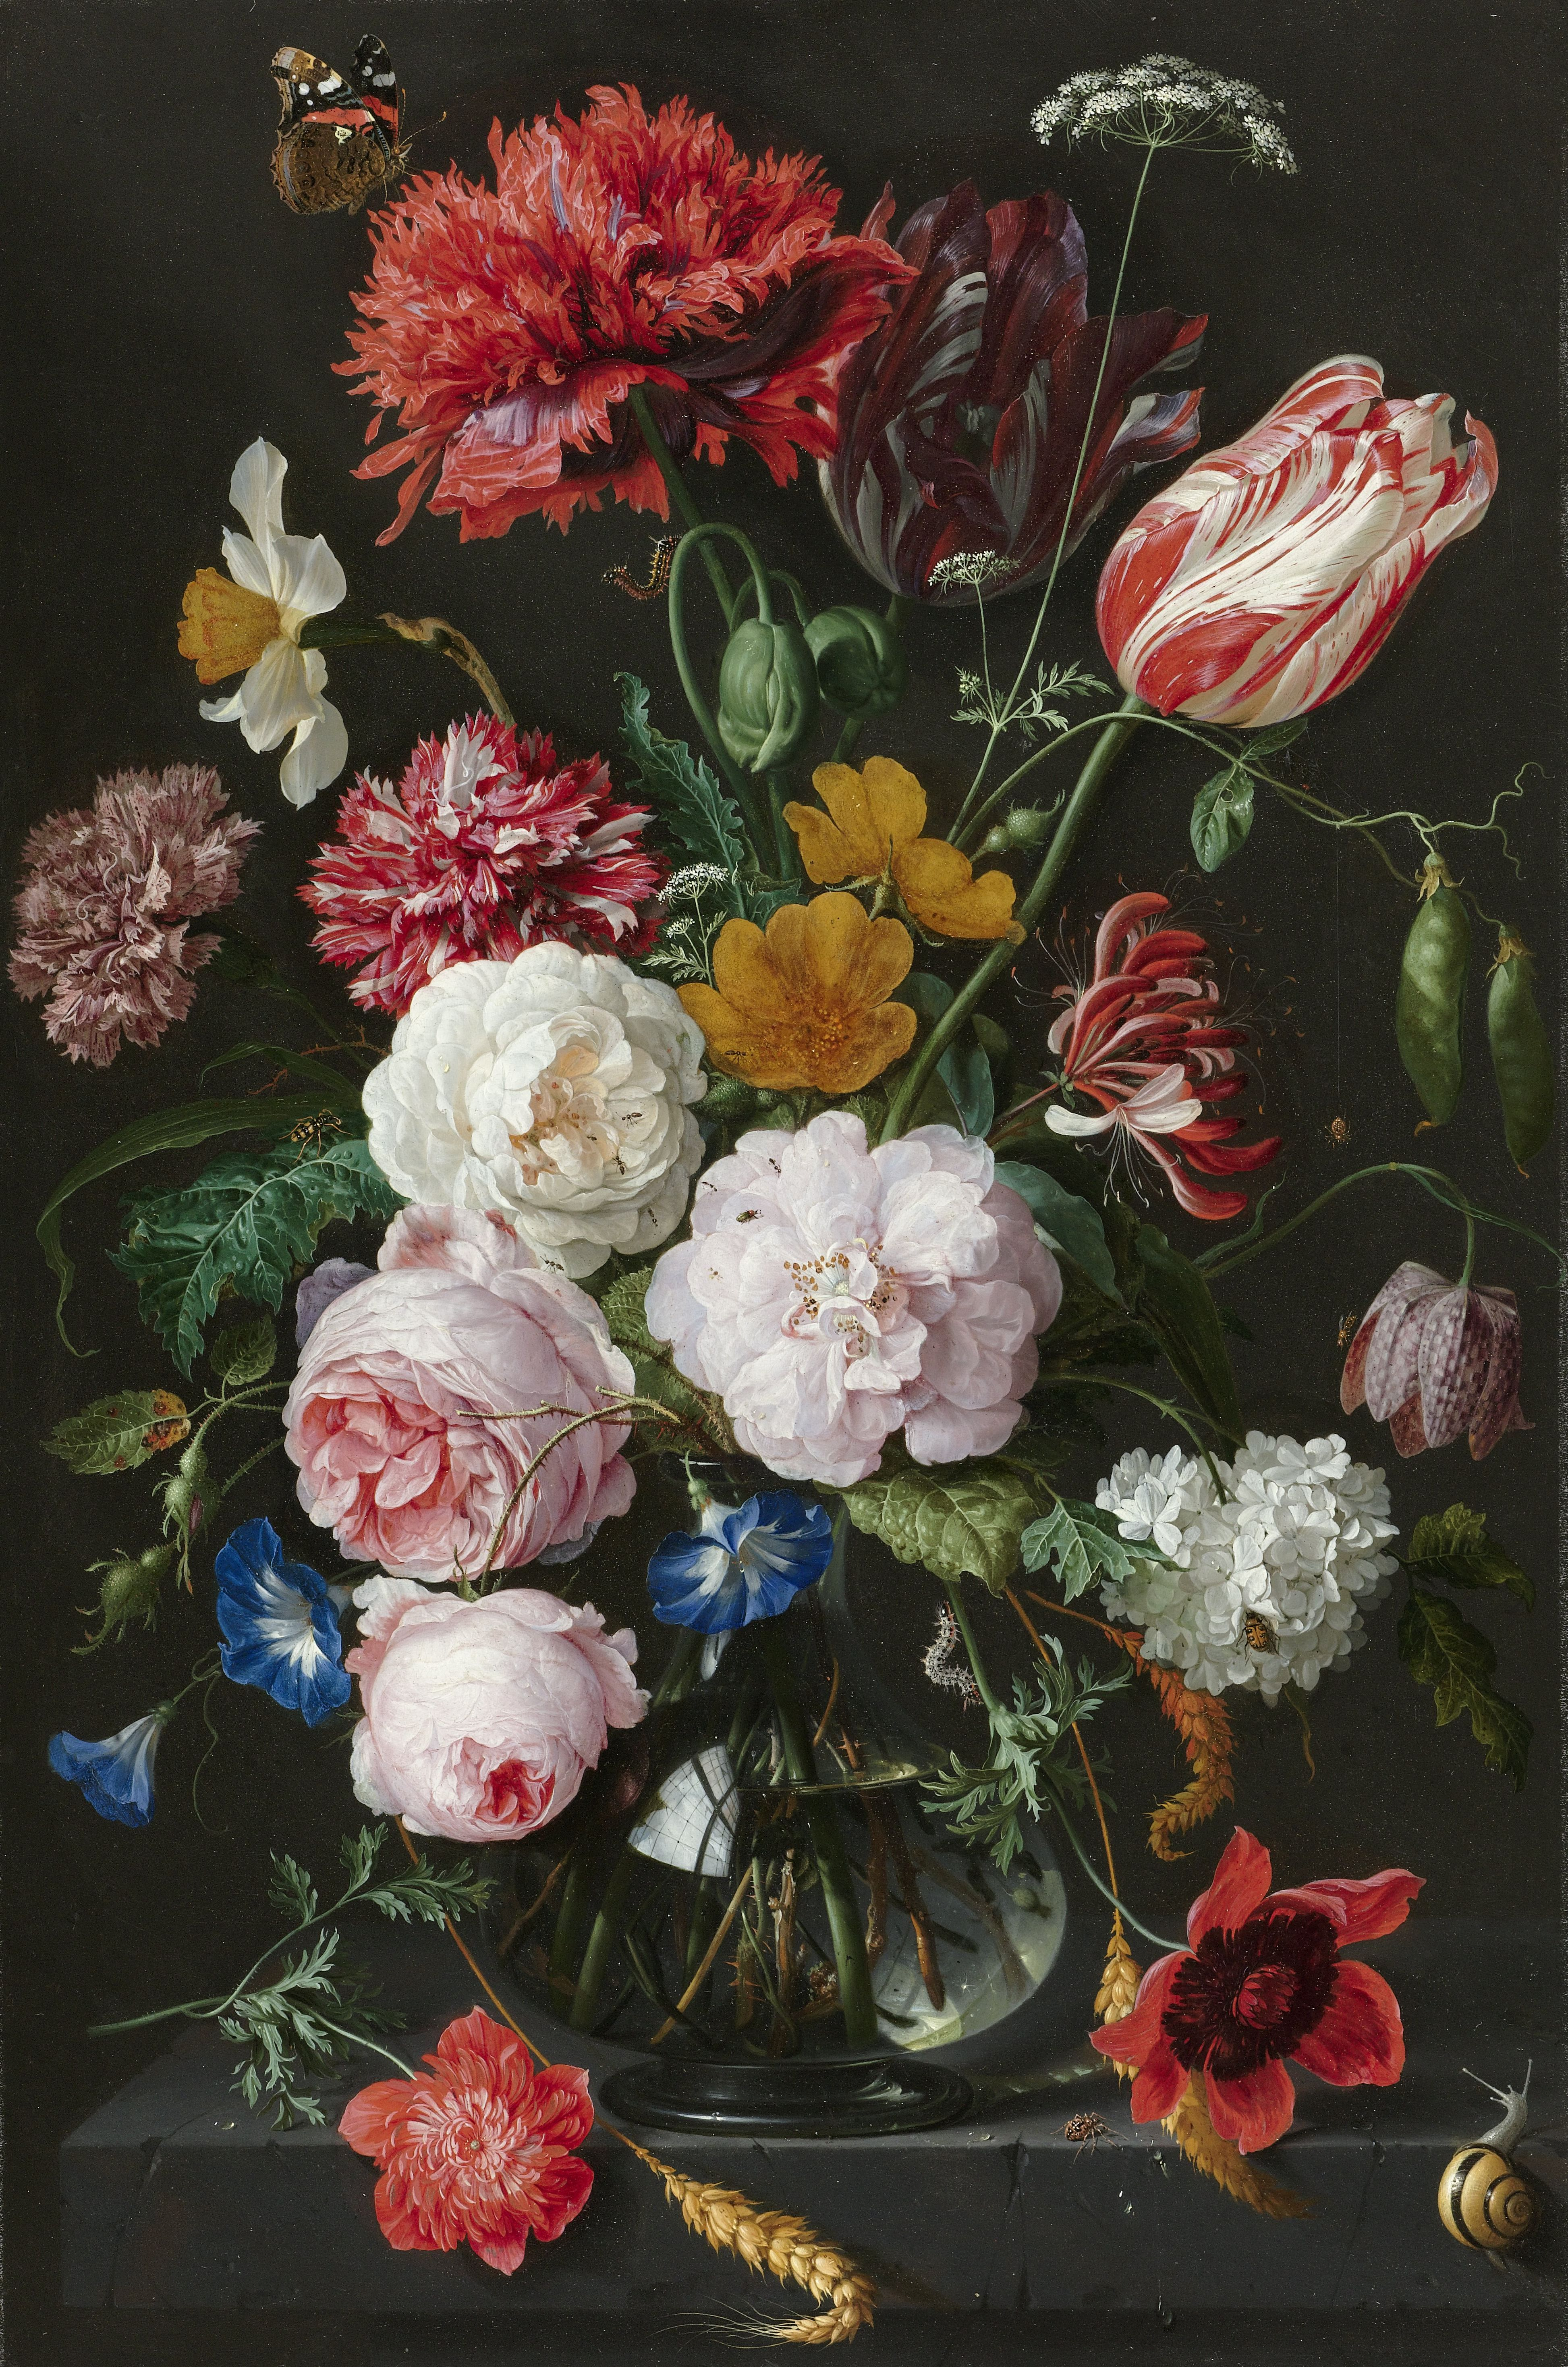 Still life with flowers in a glass vase jan davidsz de heem still life with flowers in a glass vase jan davidsz de heem 1650 reviewsmspy